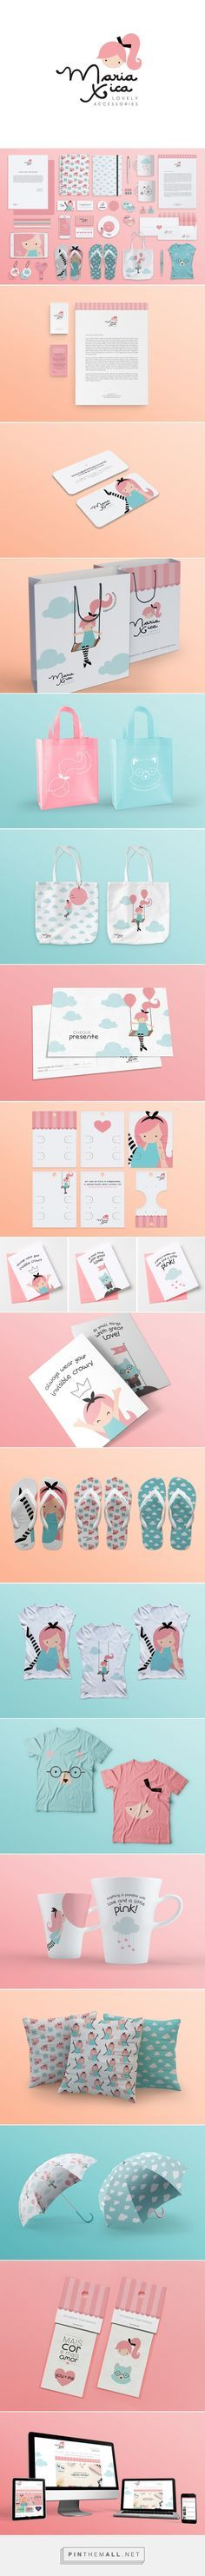 Maria-Xica-Lovely-Accessories-Branding-on-Behance | Fivestar Branding – Design and Branding Agency & Inspiration Gallery